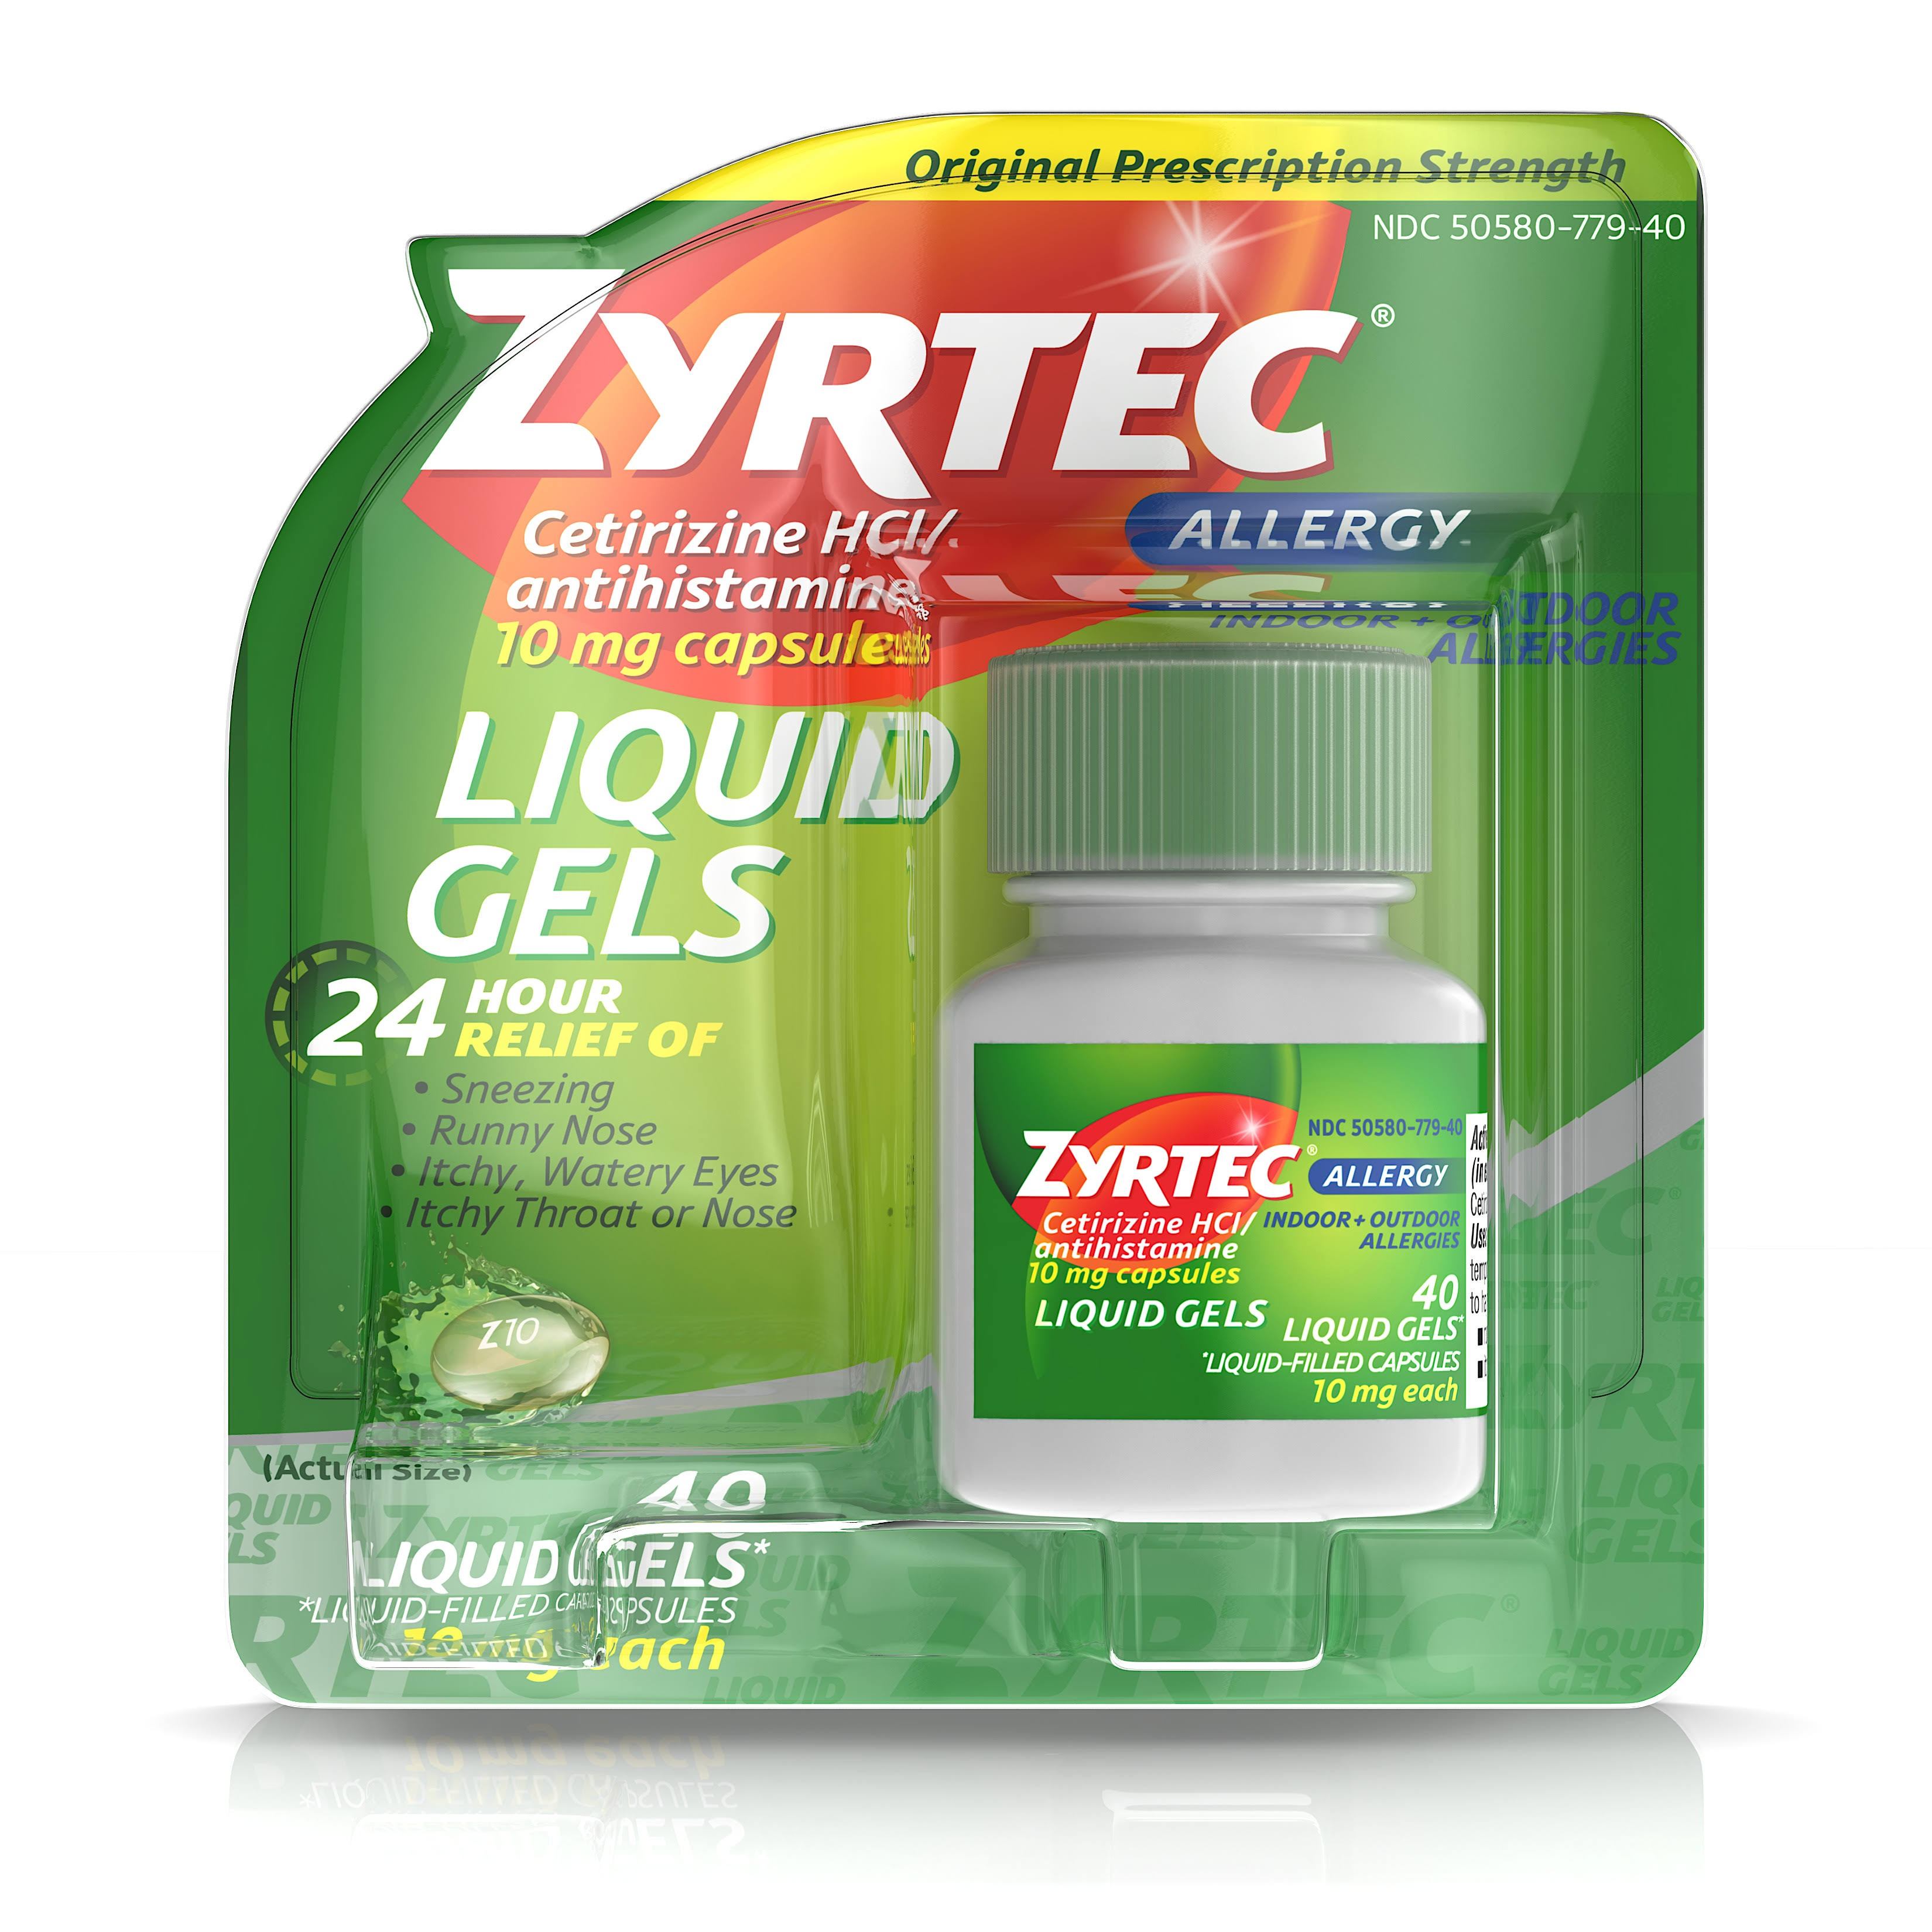 Zyrtec Original Prescription Strength Allergy Liquid Gels - 10mg, 40ct